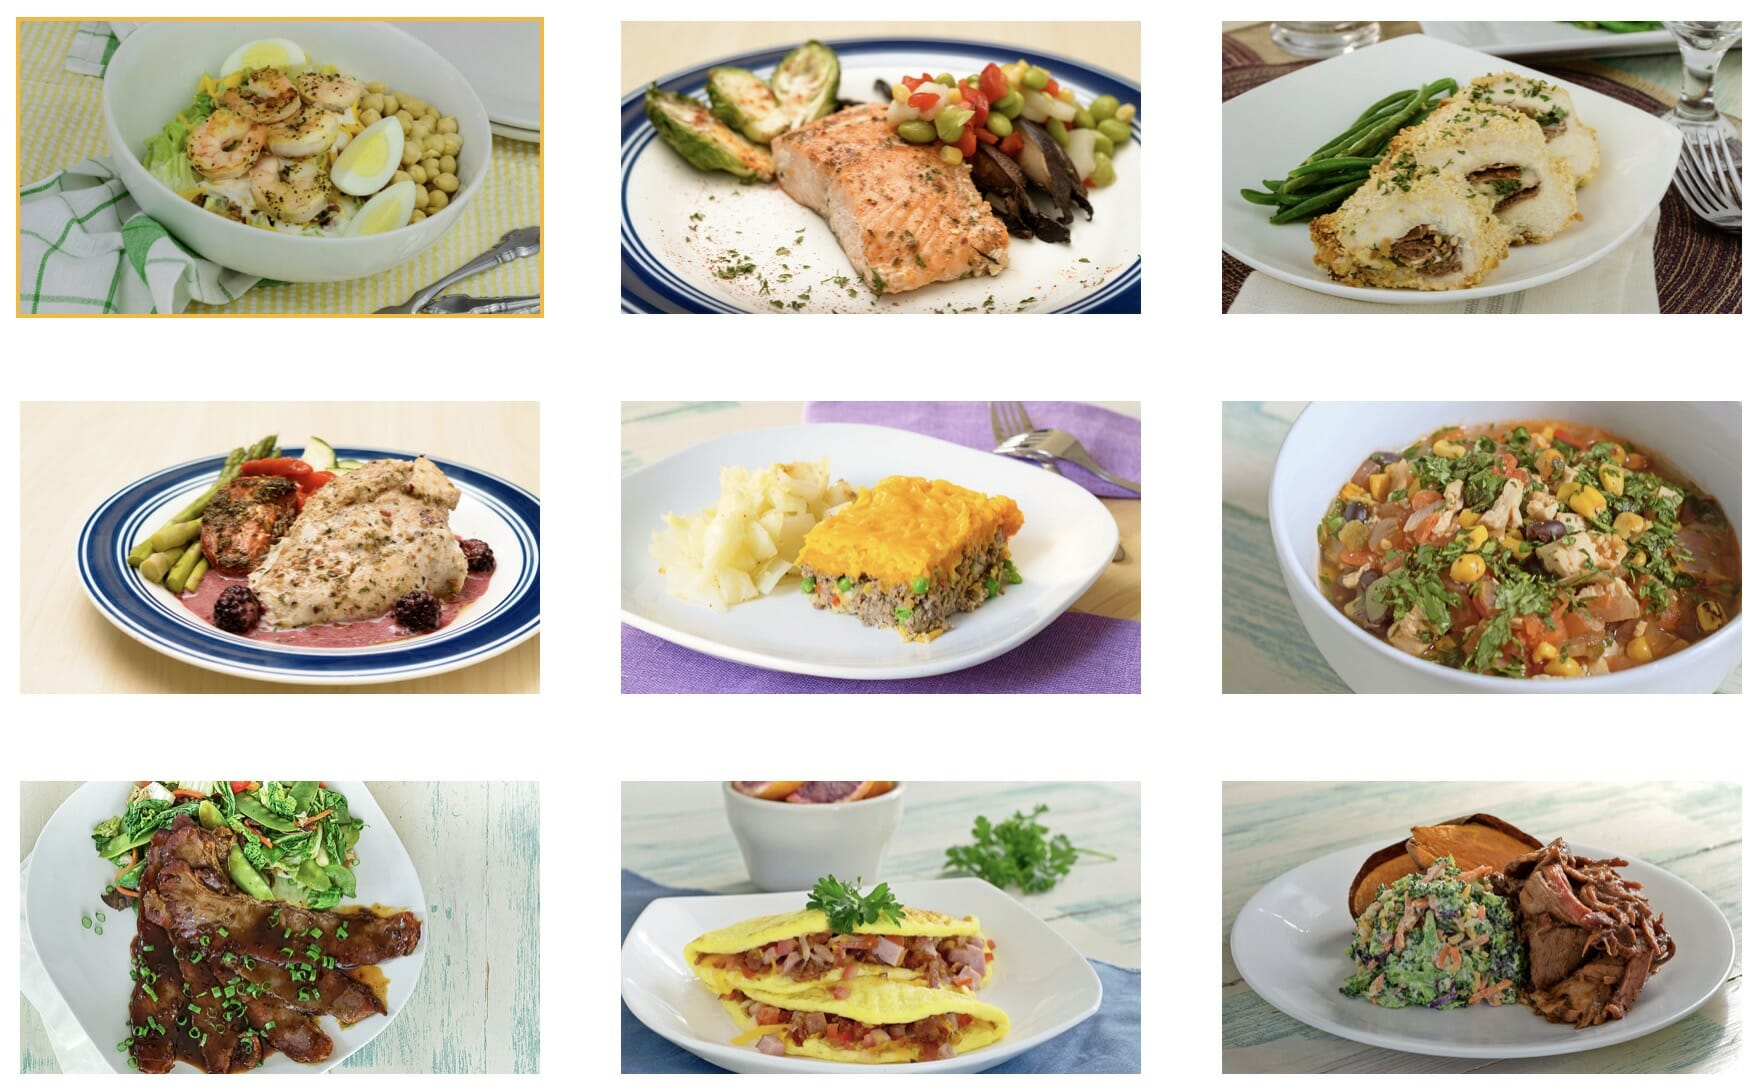 Fresh 'n Fit Cuisine - Atlanta meal delivery service